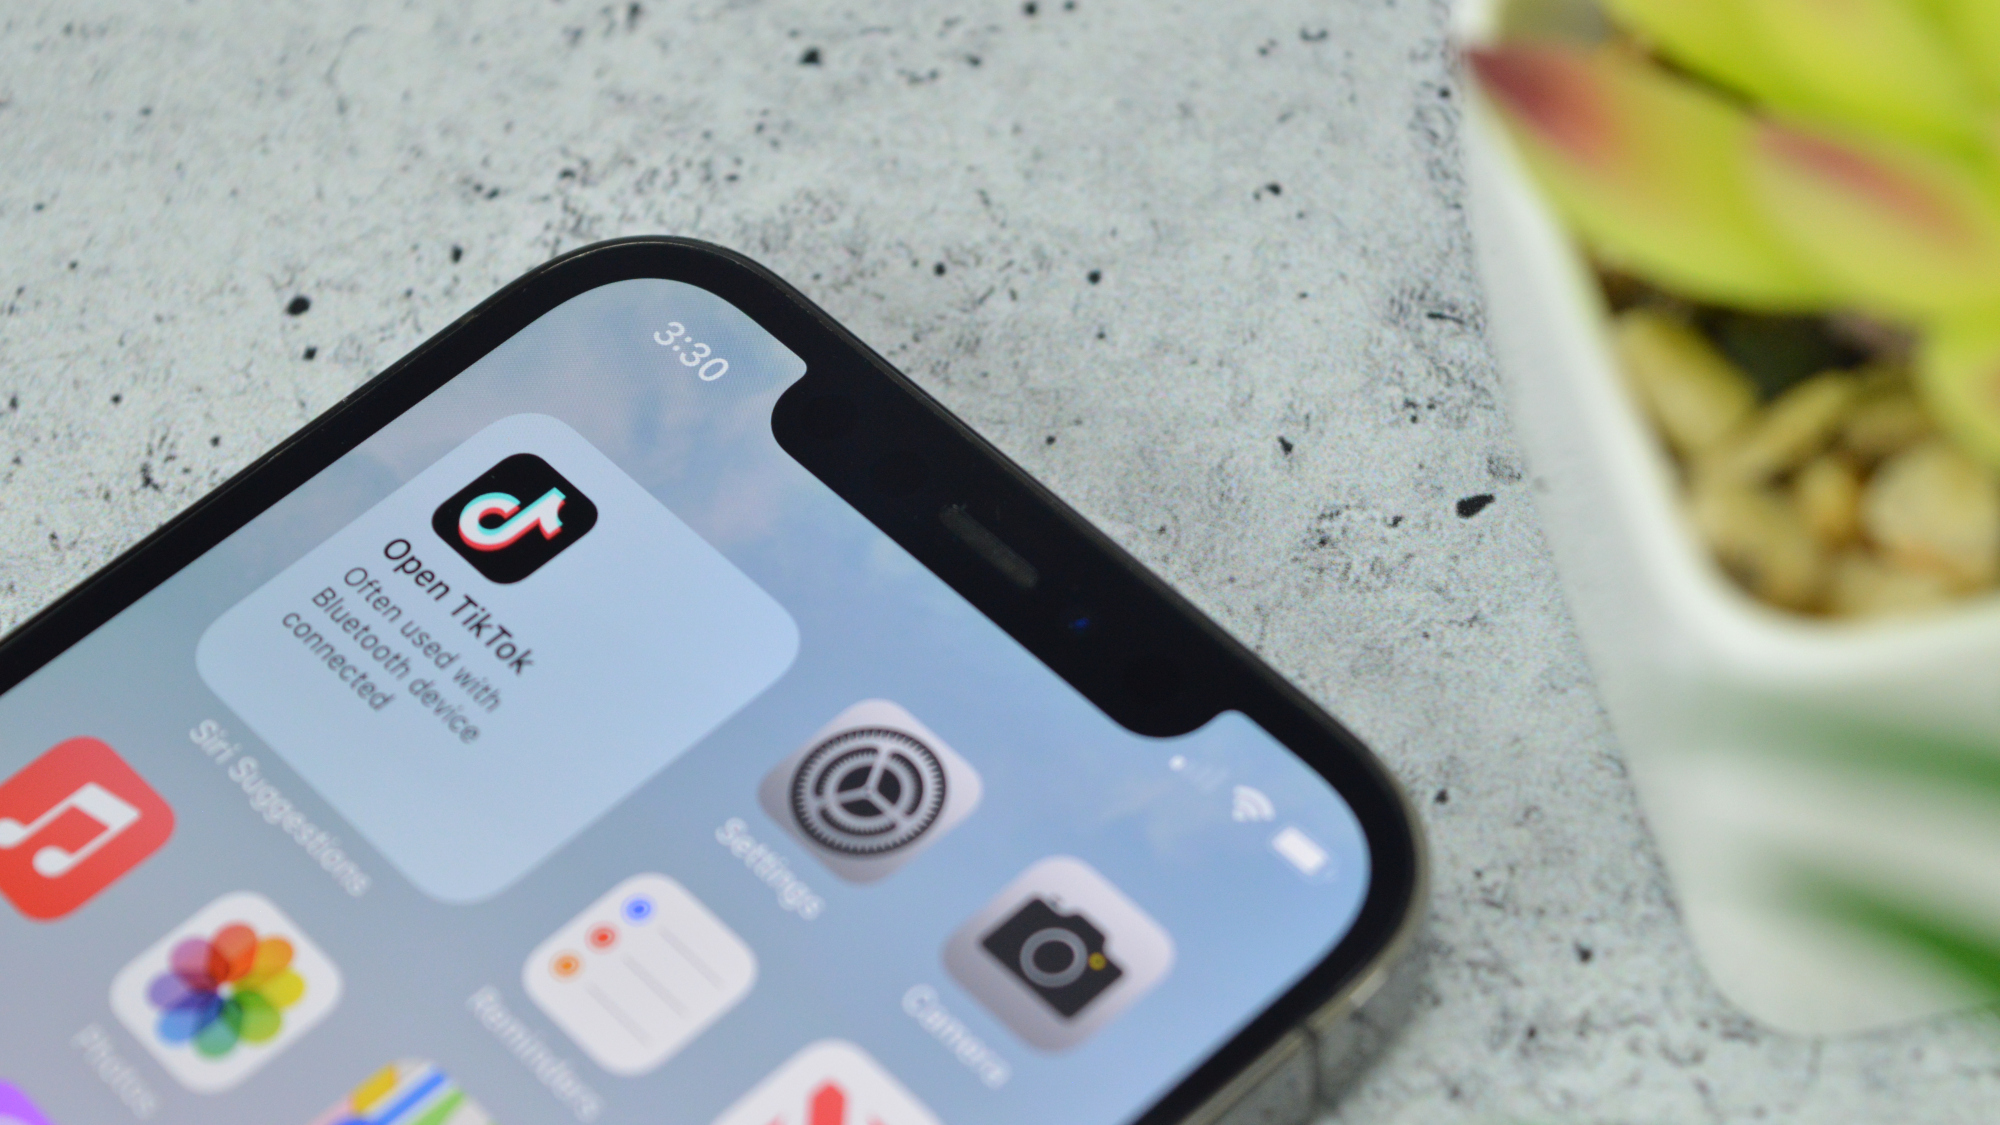 Here's the latest proof that Apple is fixing the iPhone notch